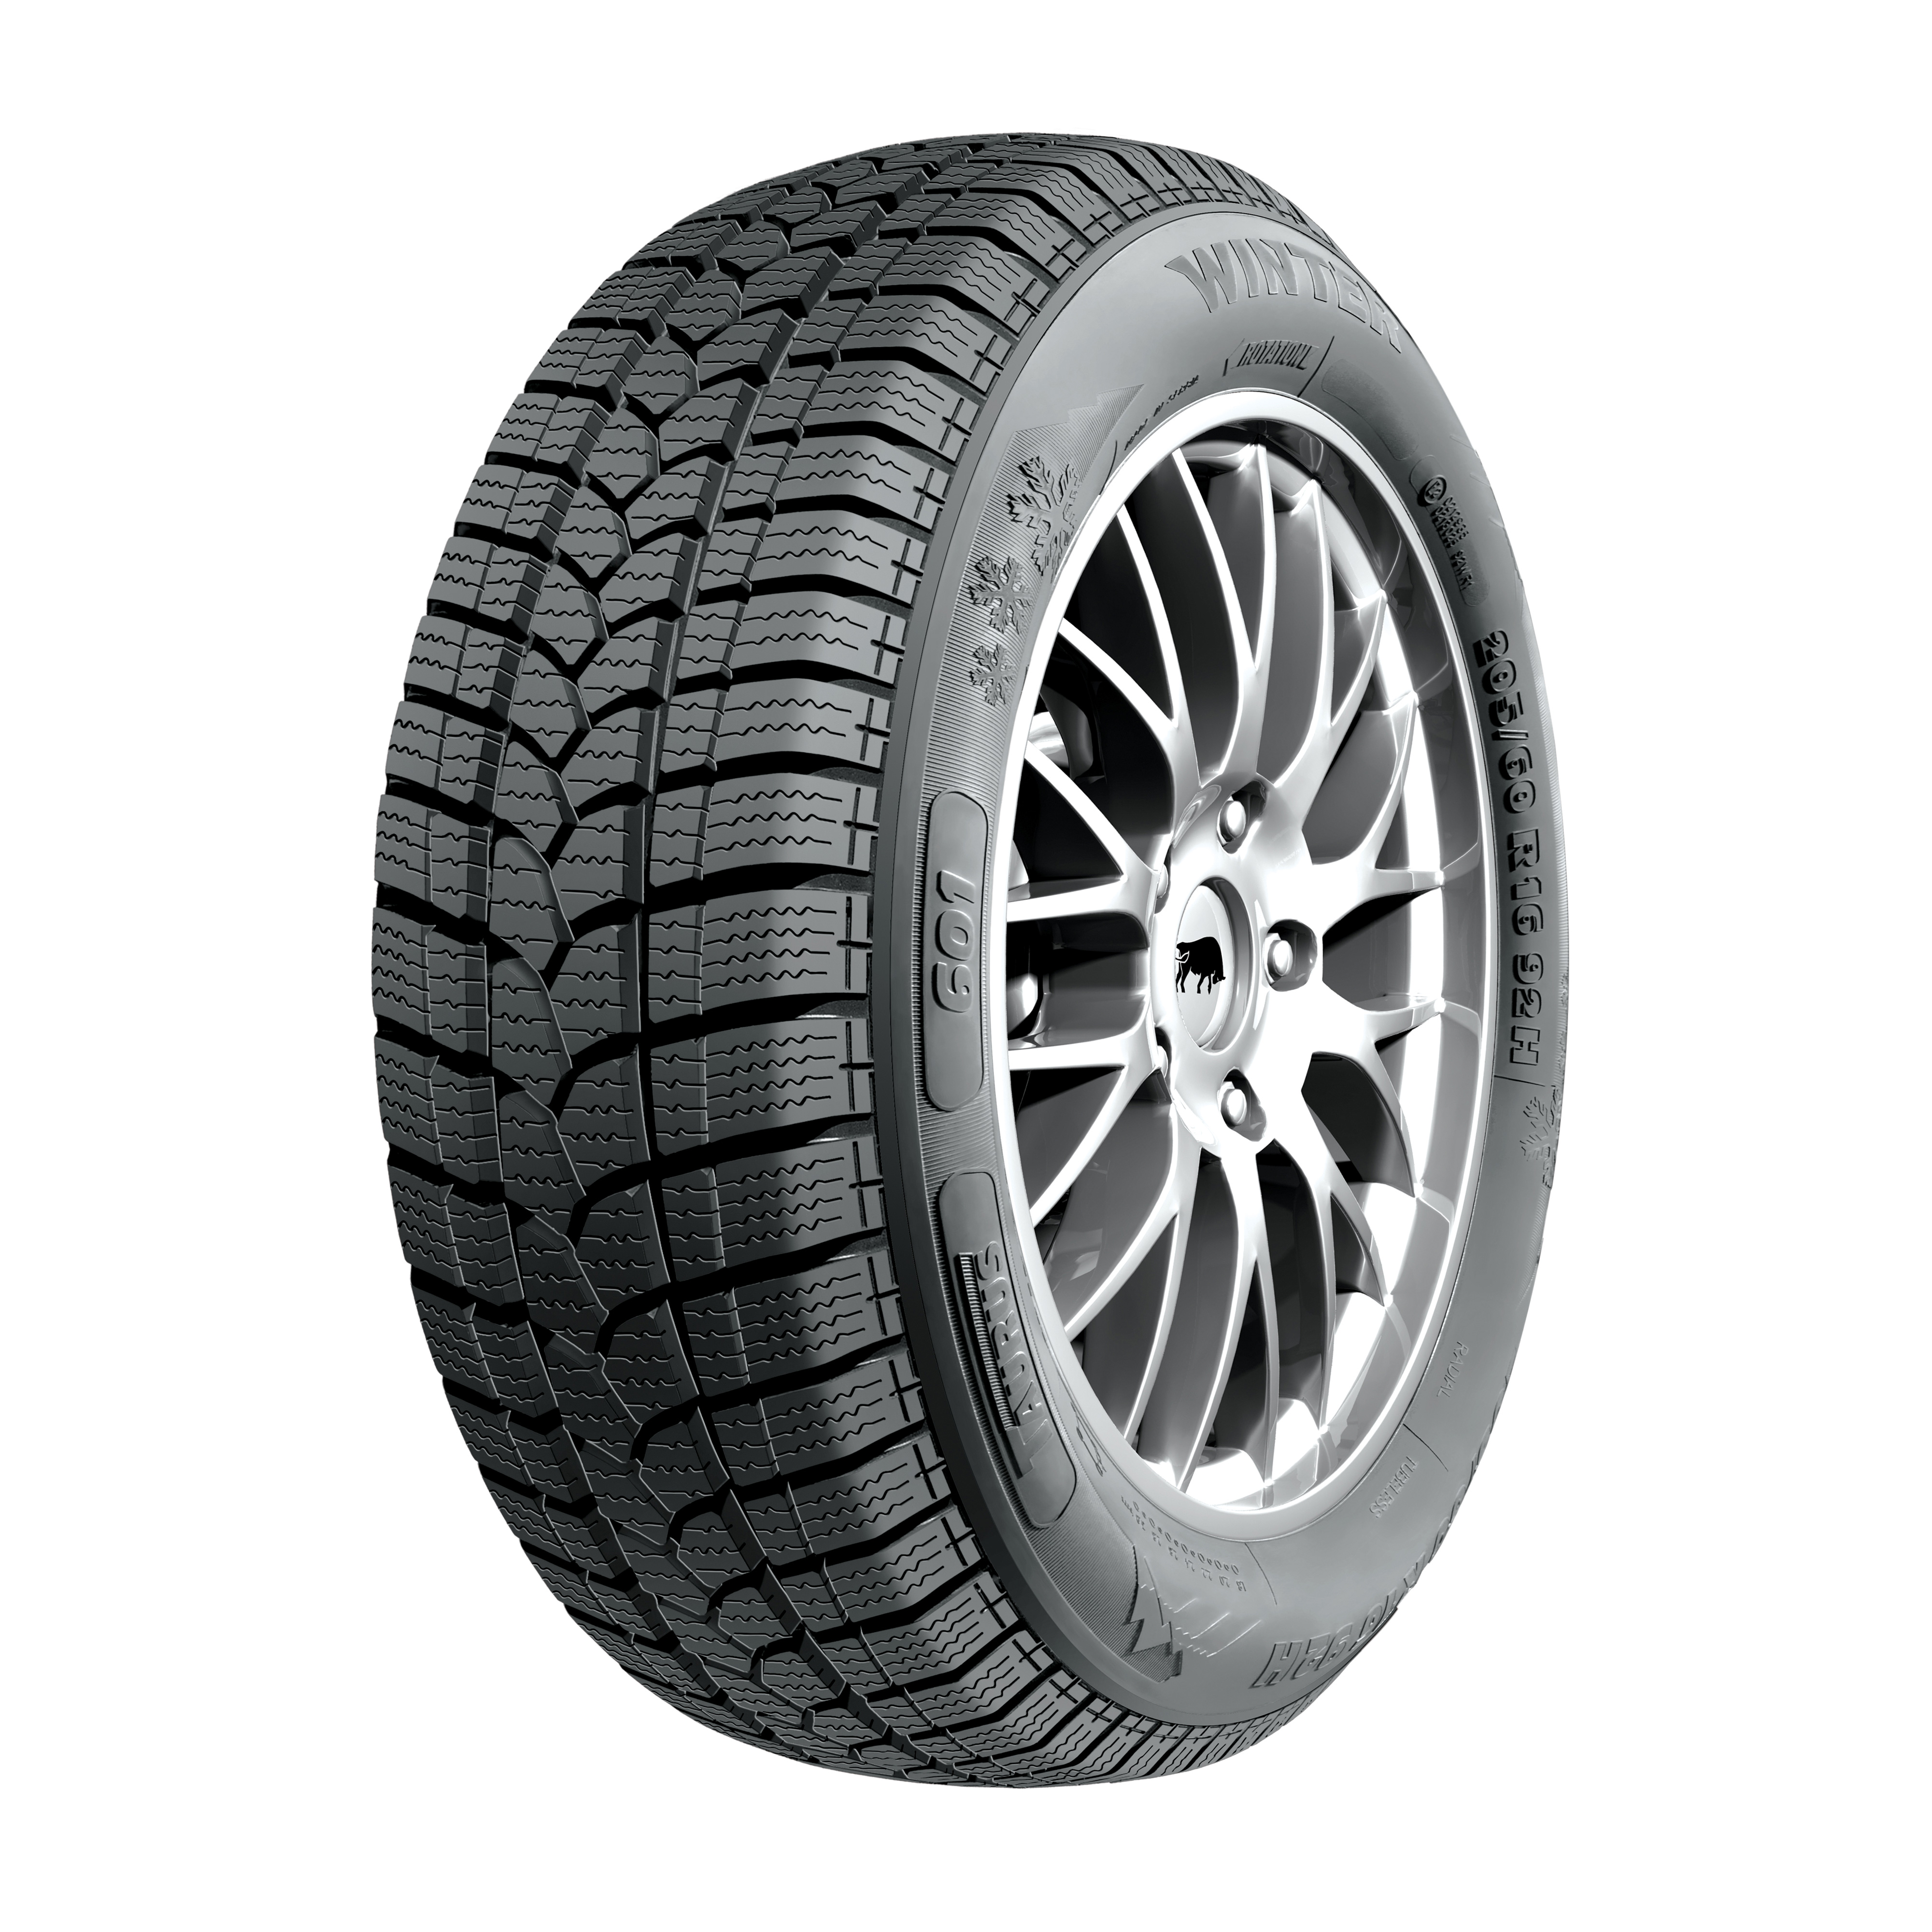 Anvelopa  Taurus Winter 601 225/45R18 95V